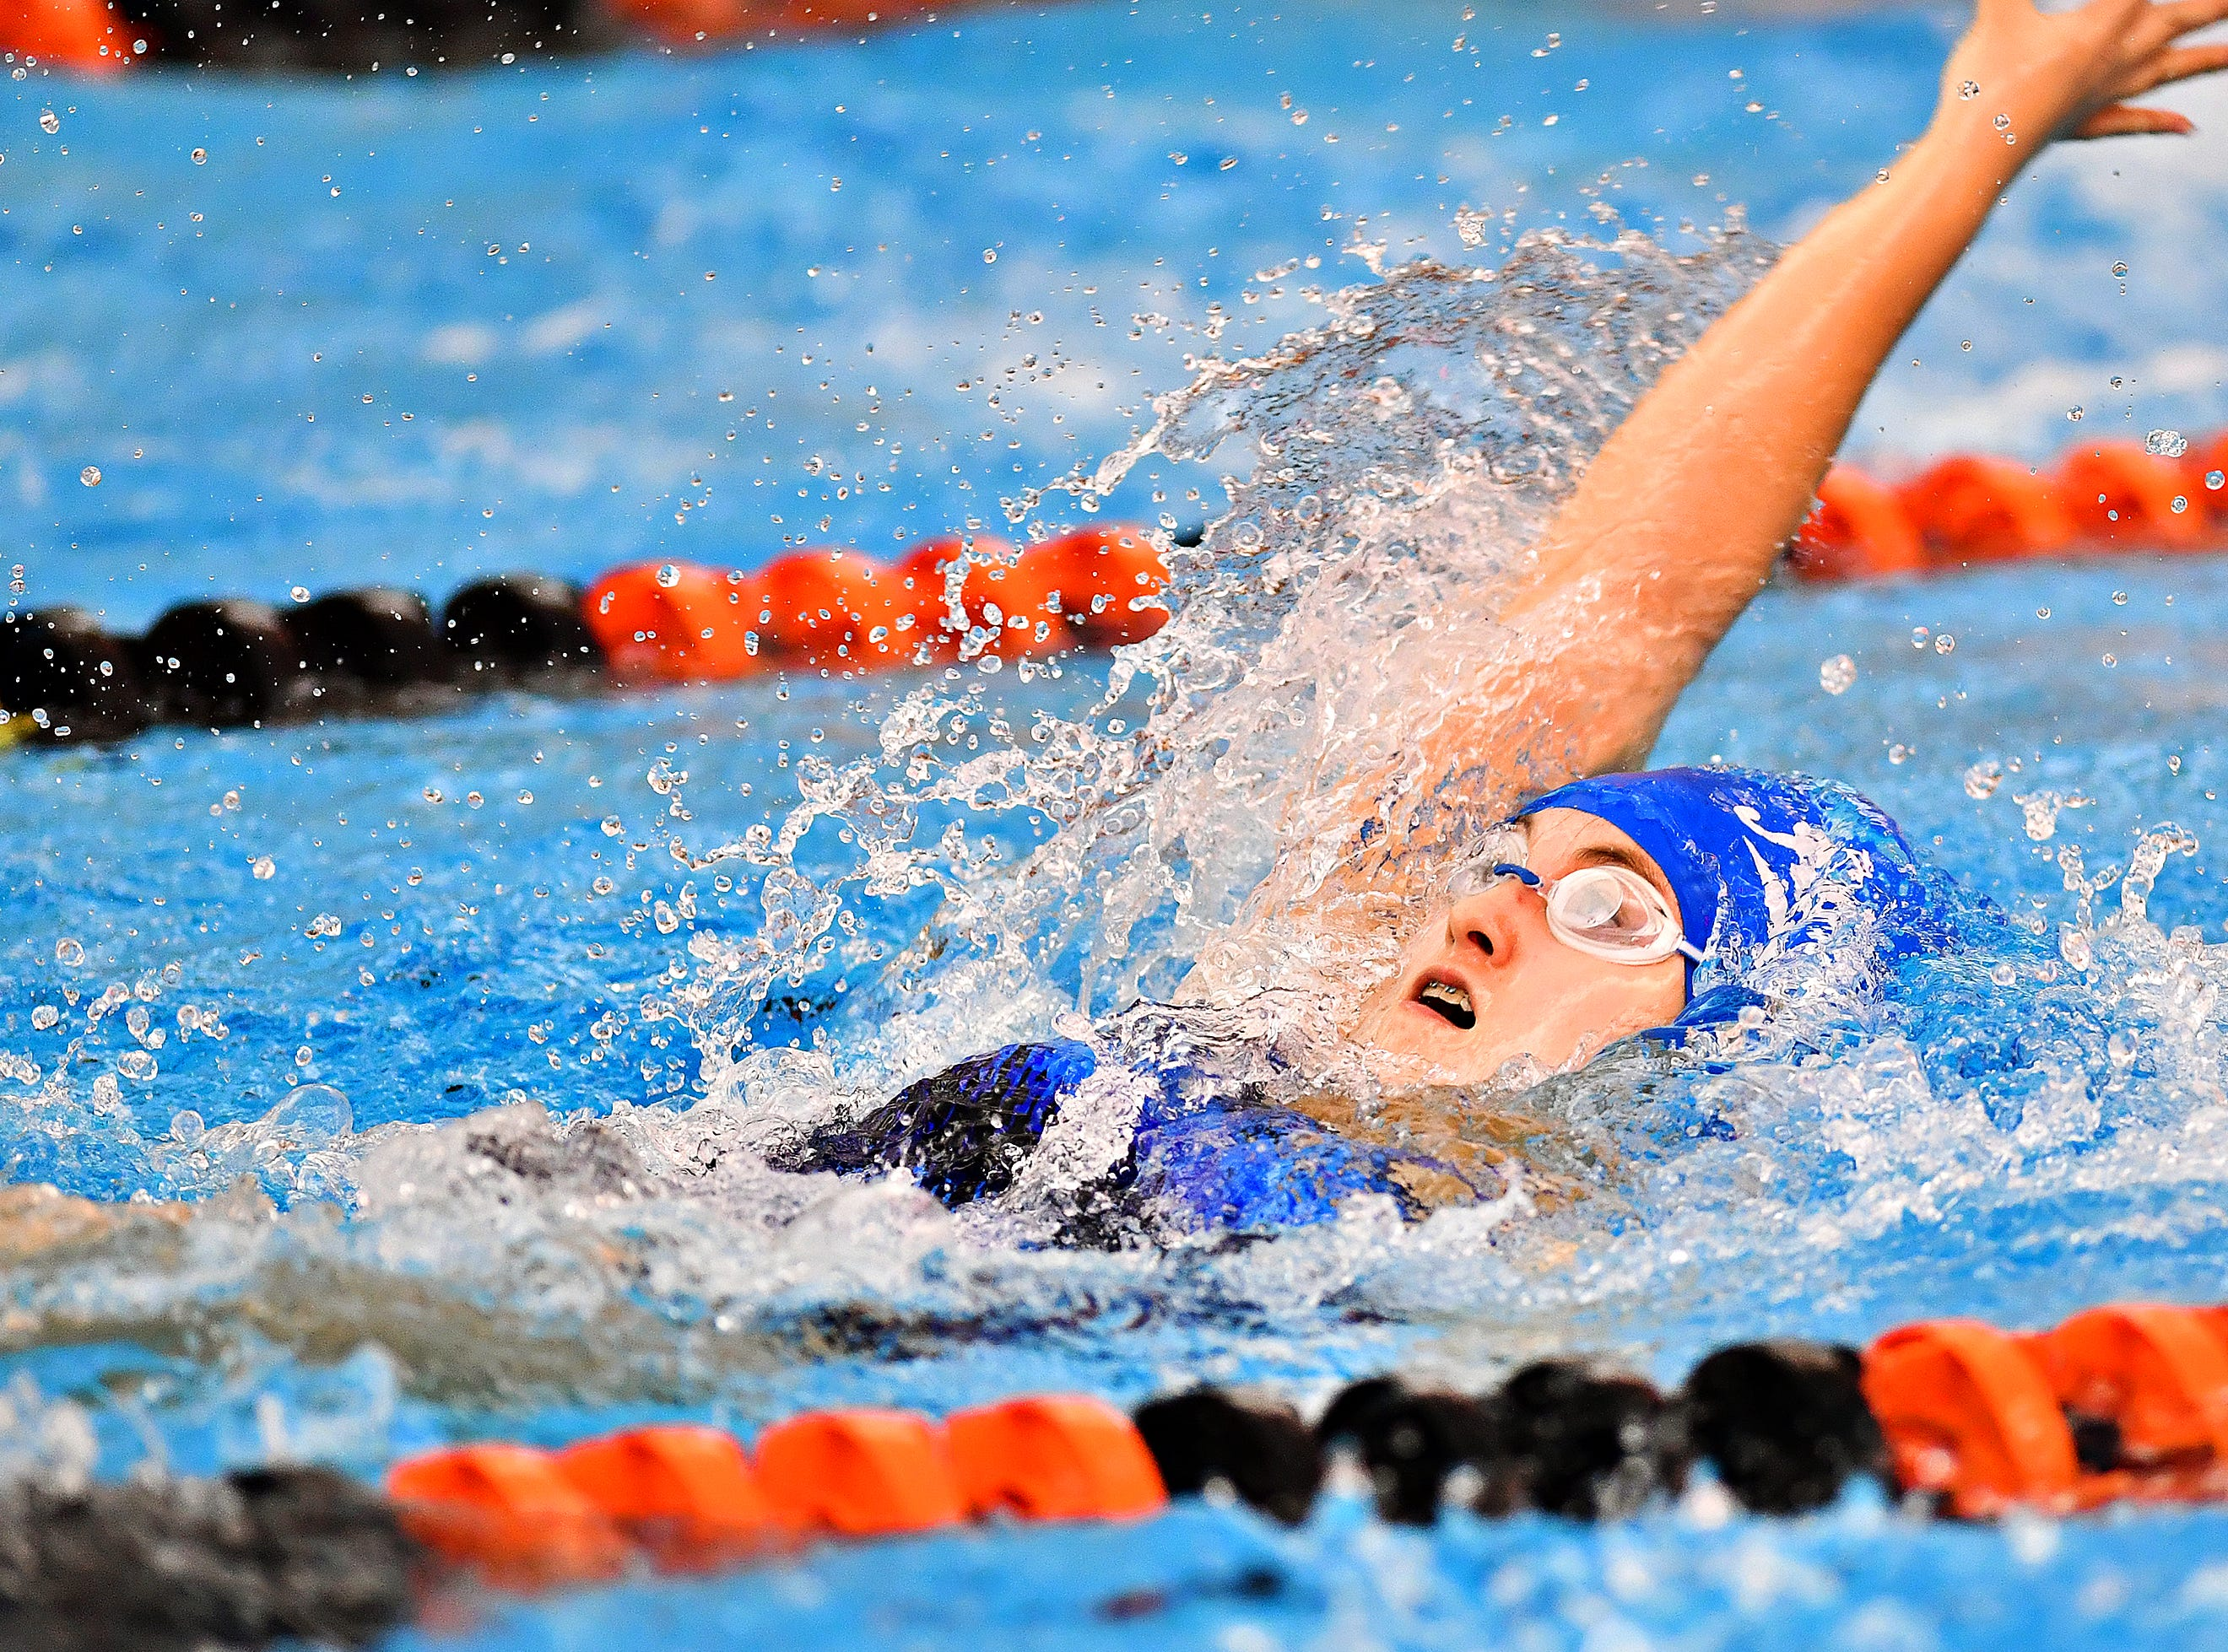 Spring Grove's Lizzie Bell competes in the 200 Yard Medley Relay during swimming action against Central York at Central York High School in Springettsbury Township, Thursday, Jan. 3, 2019. Dawn J. Sagert photo